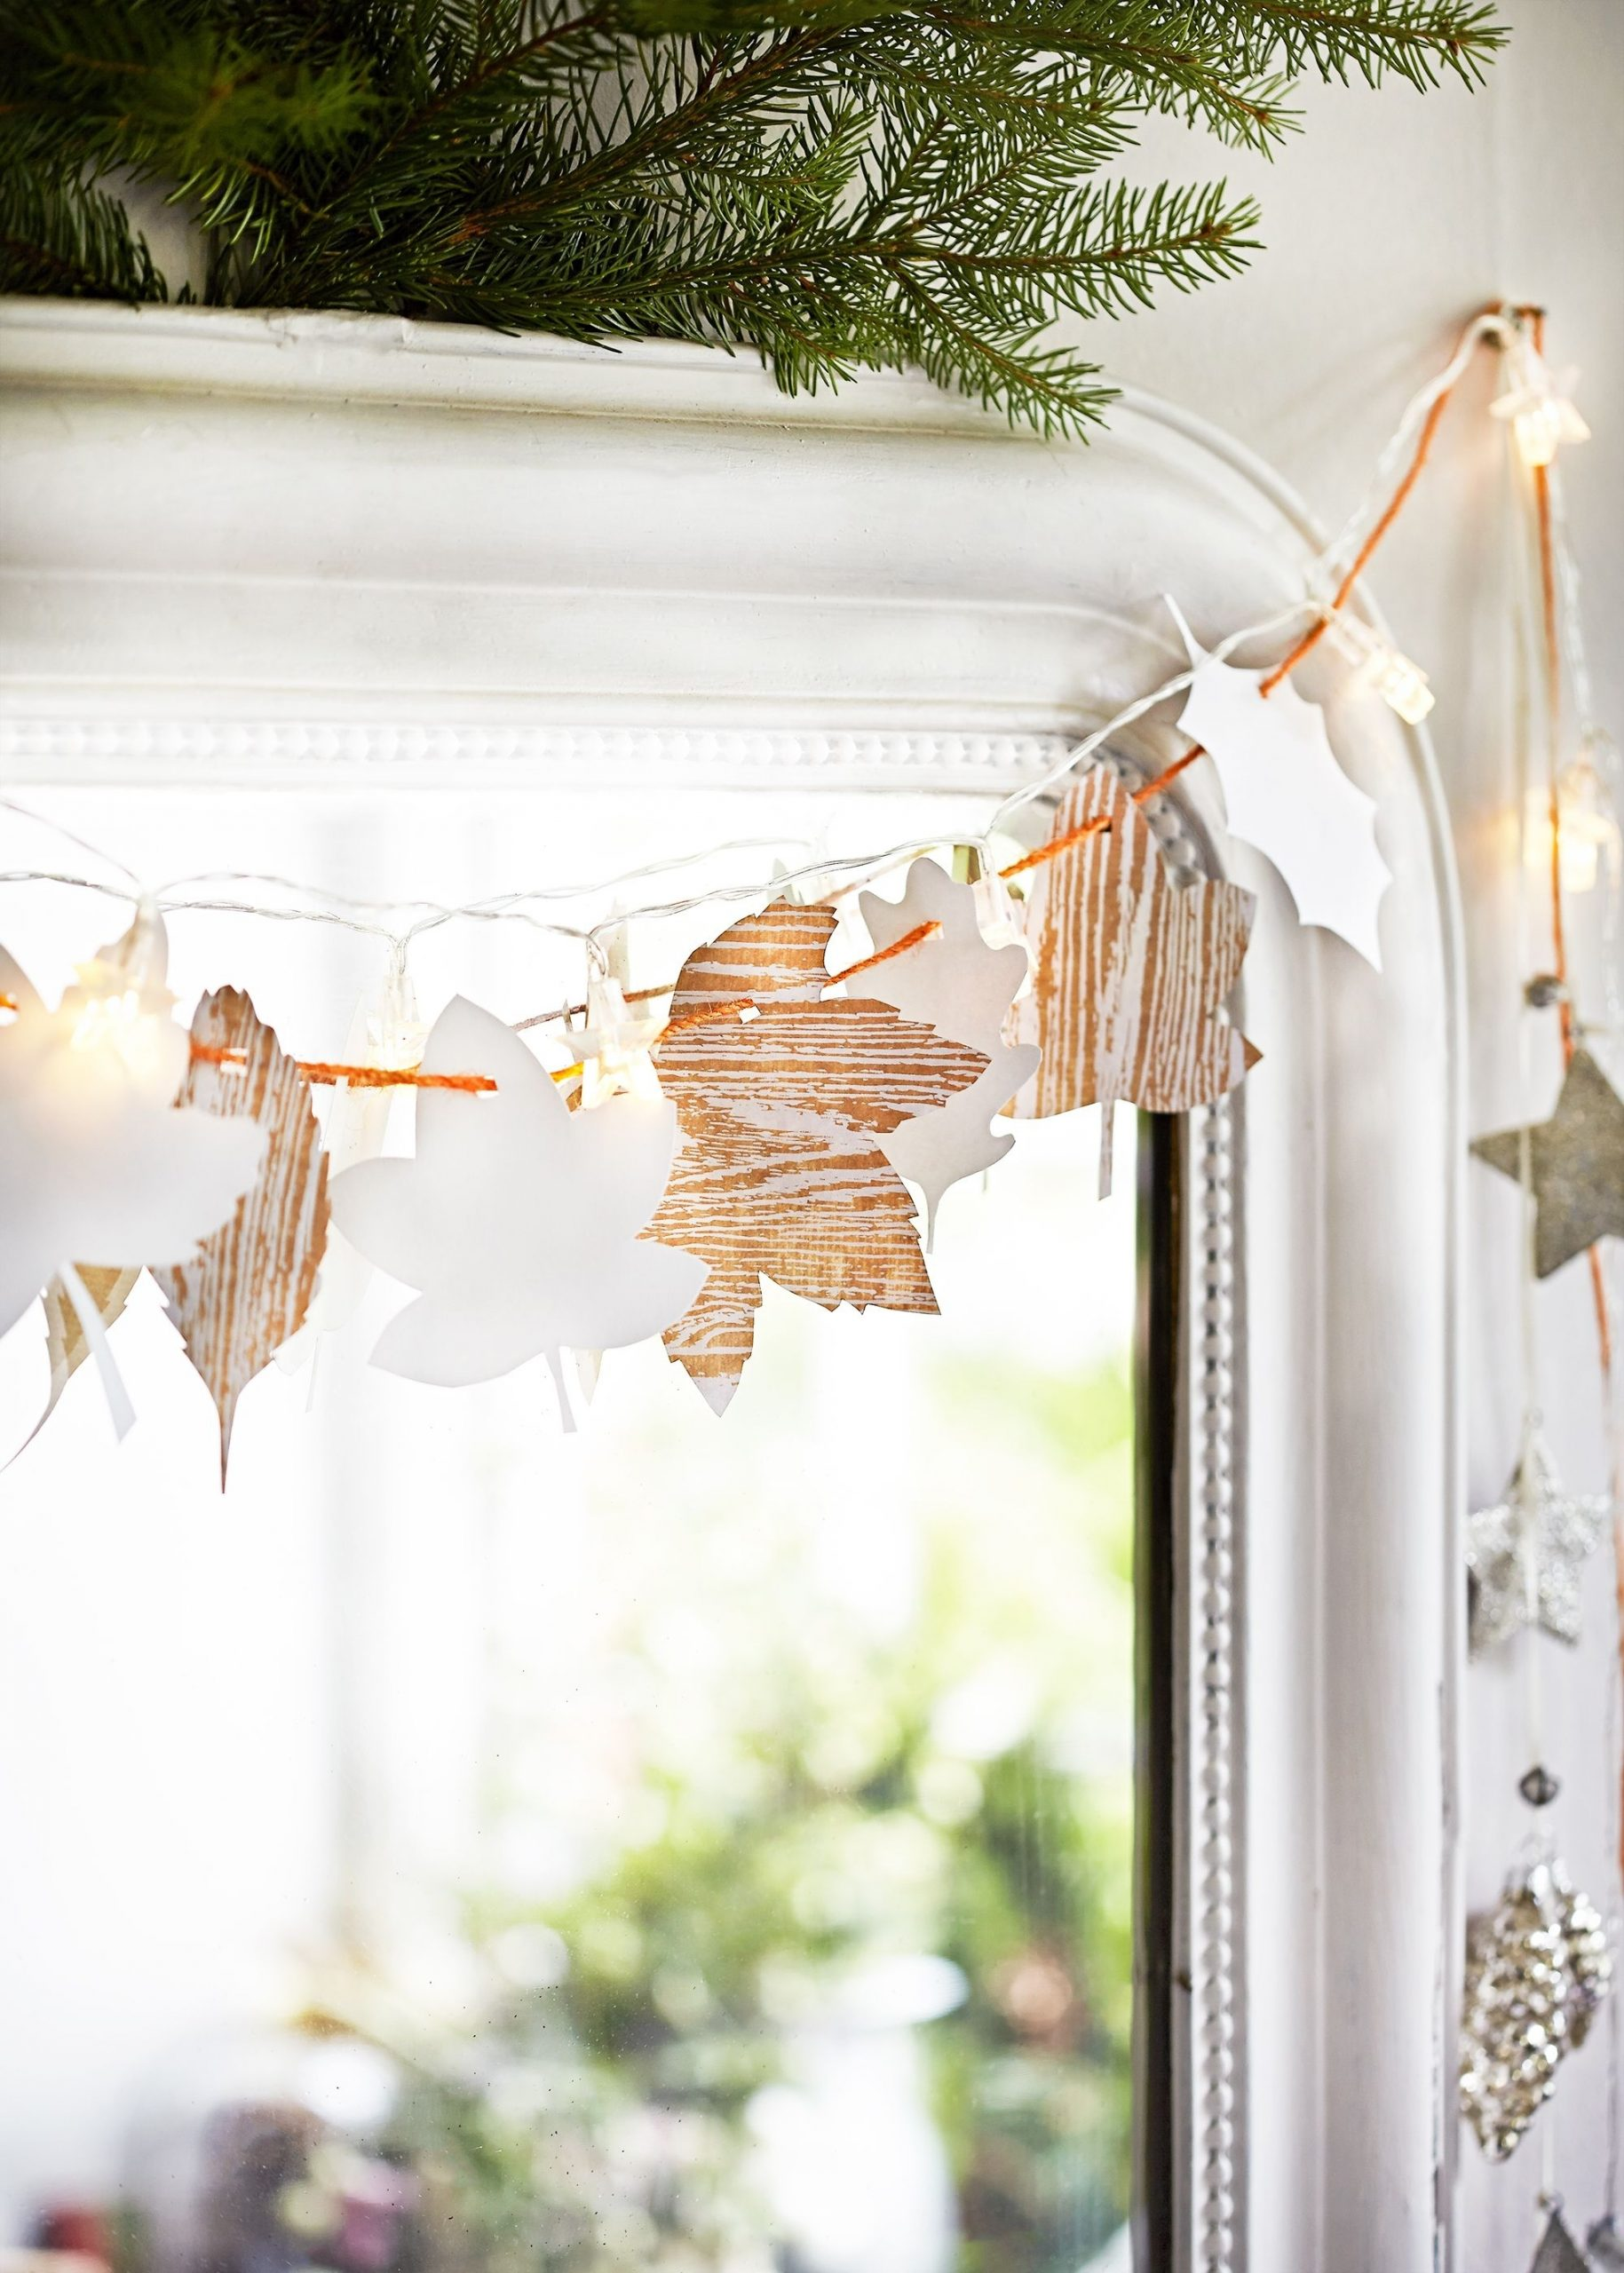 17 Easy Diy Christmas Window Decorations Best Holiday